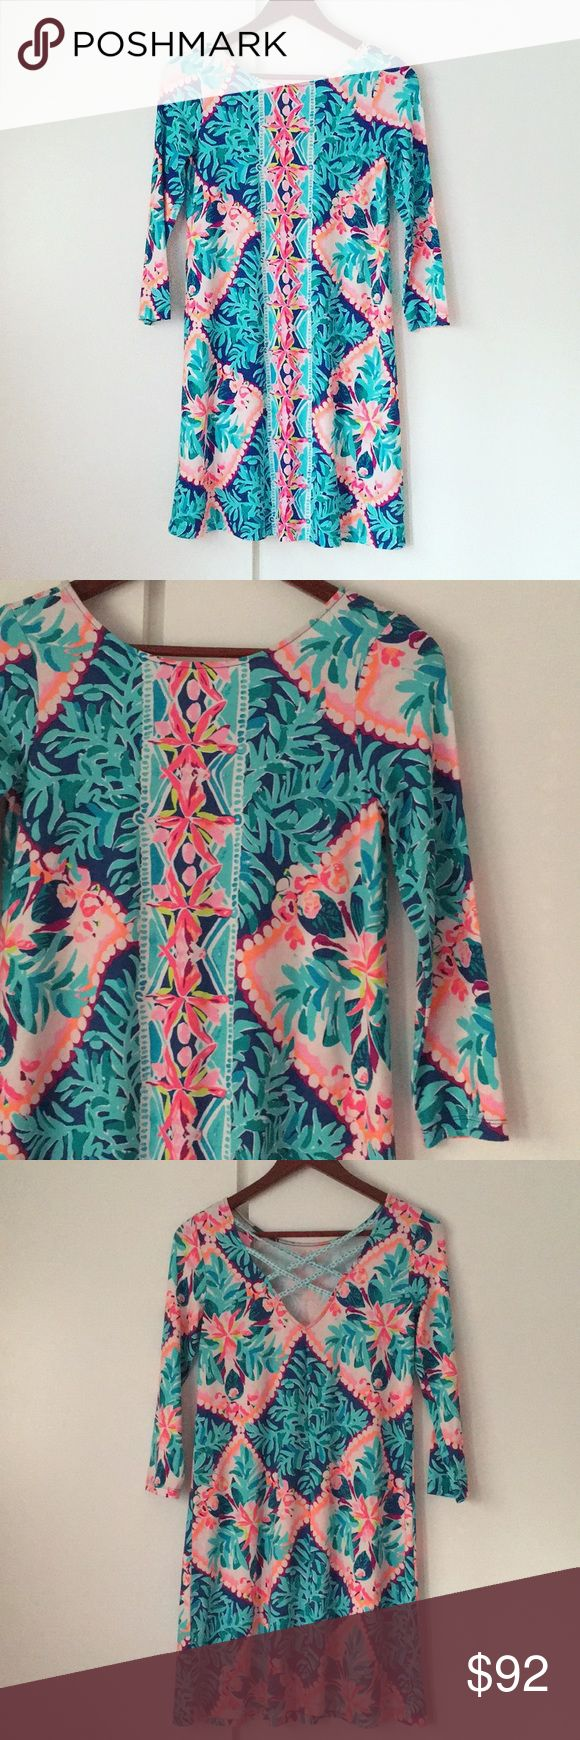 "Lilly Pulitzer Ophelia Dress Gorgeous Lilly Pulitzer Ophelia Dress in Seaside Aqua, print is Coconut Cove. Very flattering swing style with open strapped back. Super cute and comfy. Brand new, never worn. Last pic from site to show fit. 35"" long, 17"" armpit to armpit. Offers via offer button only please. Bundle with other Lilly in my closet for a discount!  Condition: New, never worn  🚫NO TRADES🚫 ❌ NO TRY ONS ❌ Please ask any questions prior to purchasing. All sales final. Lilly Pulitzer…"